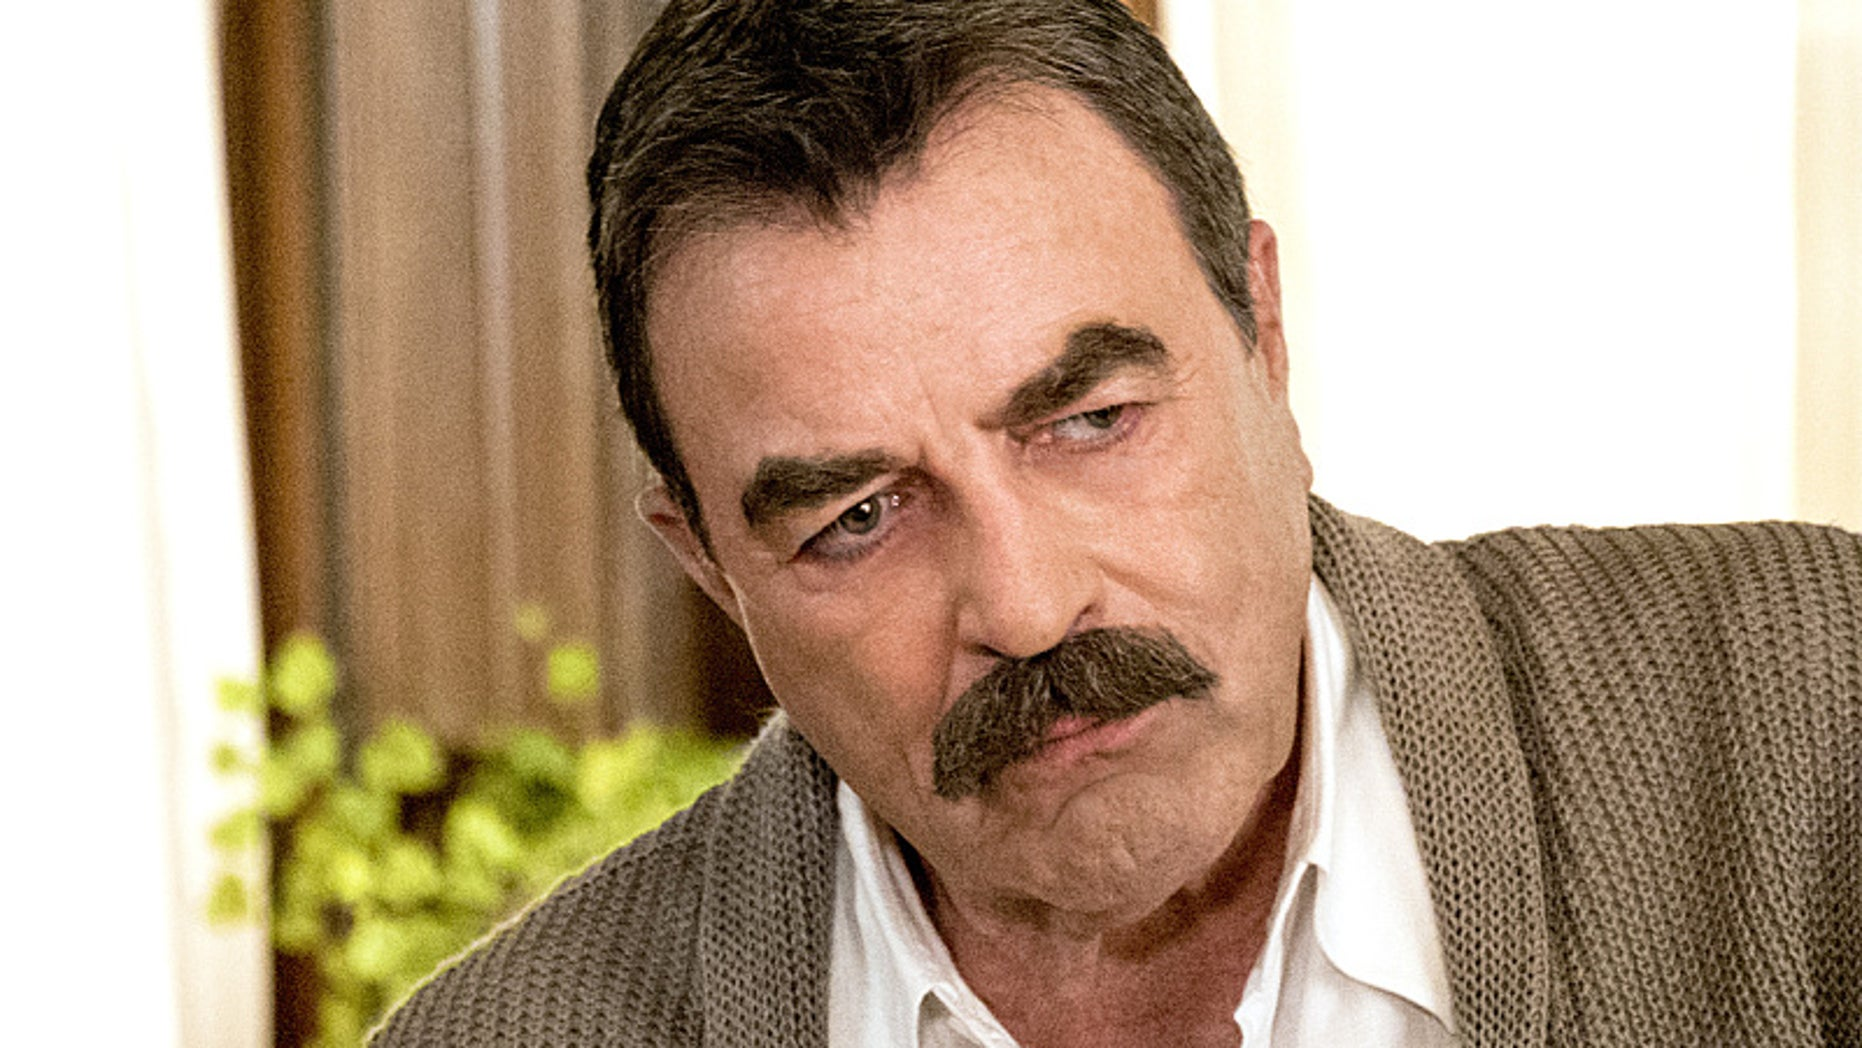 Tom Selleck tears up while watching his own movie   Fox News